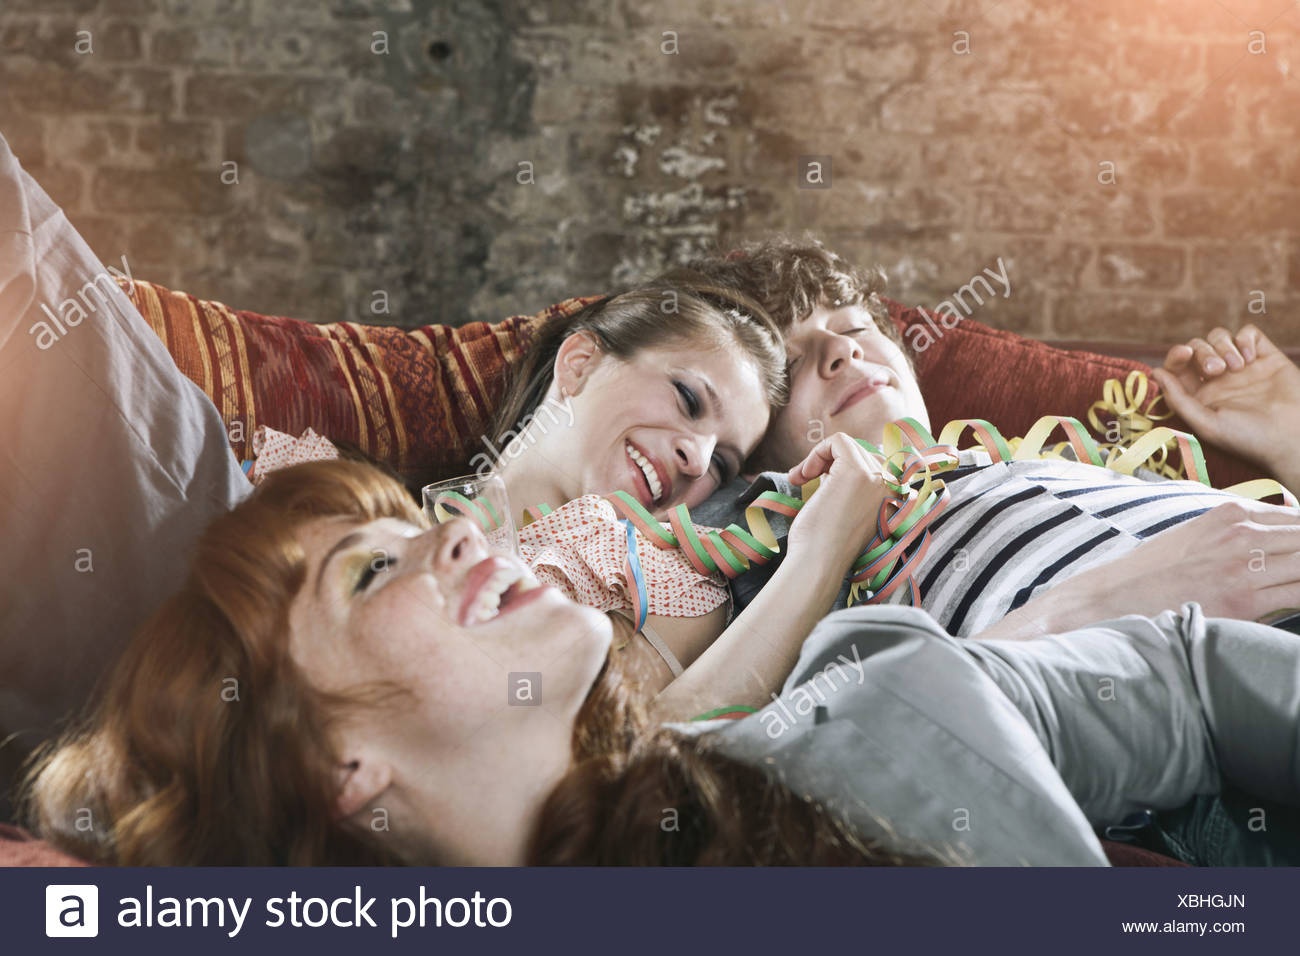 Allemagne, Berlin, Close up of young man and women relaxing on couch, smiling Banque D'Images